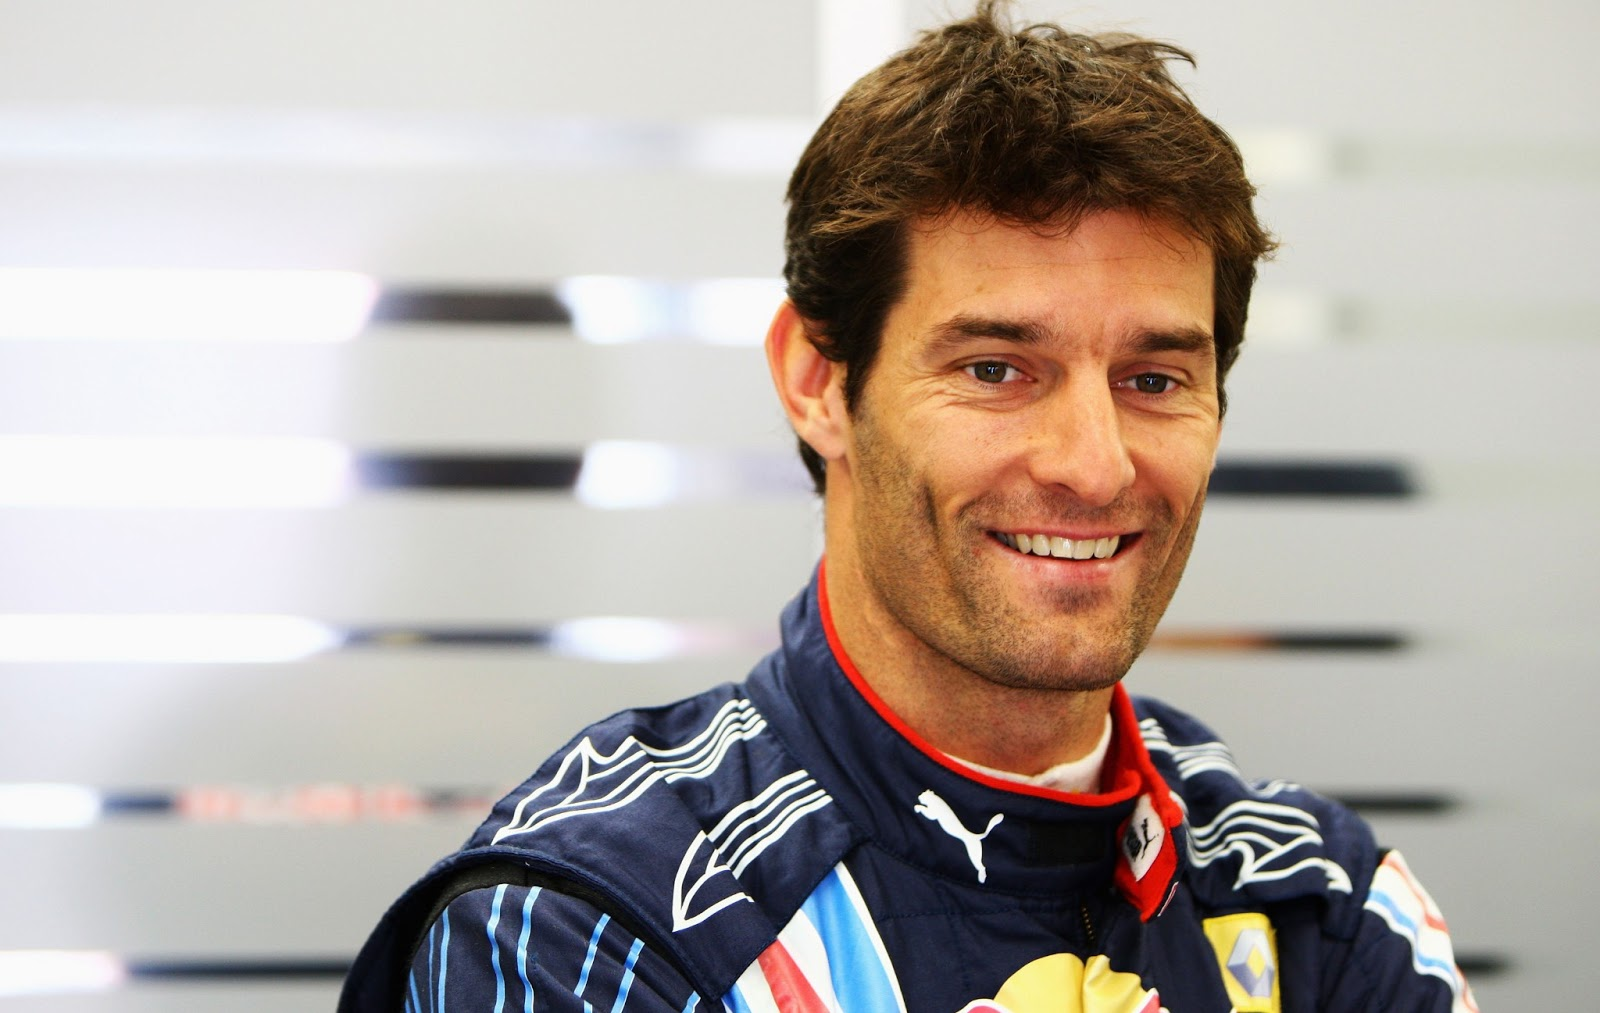 Mark Webber To Quit Racing Community News Group